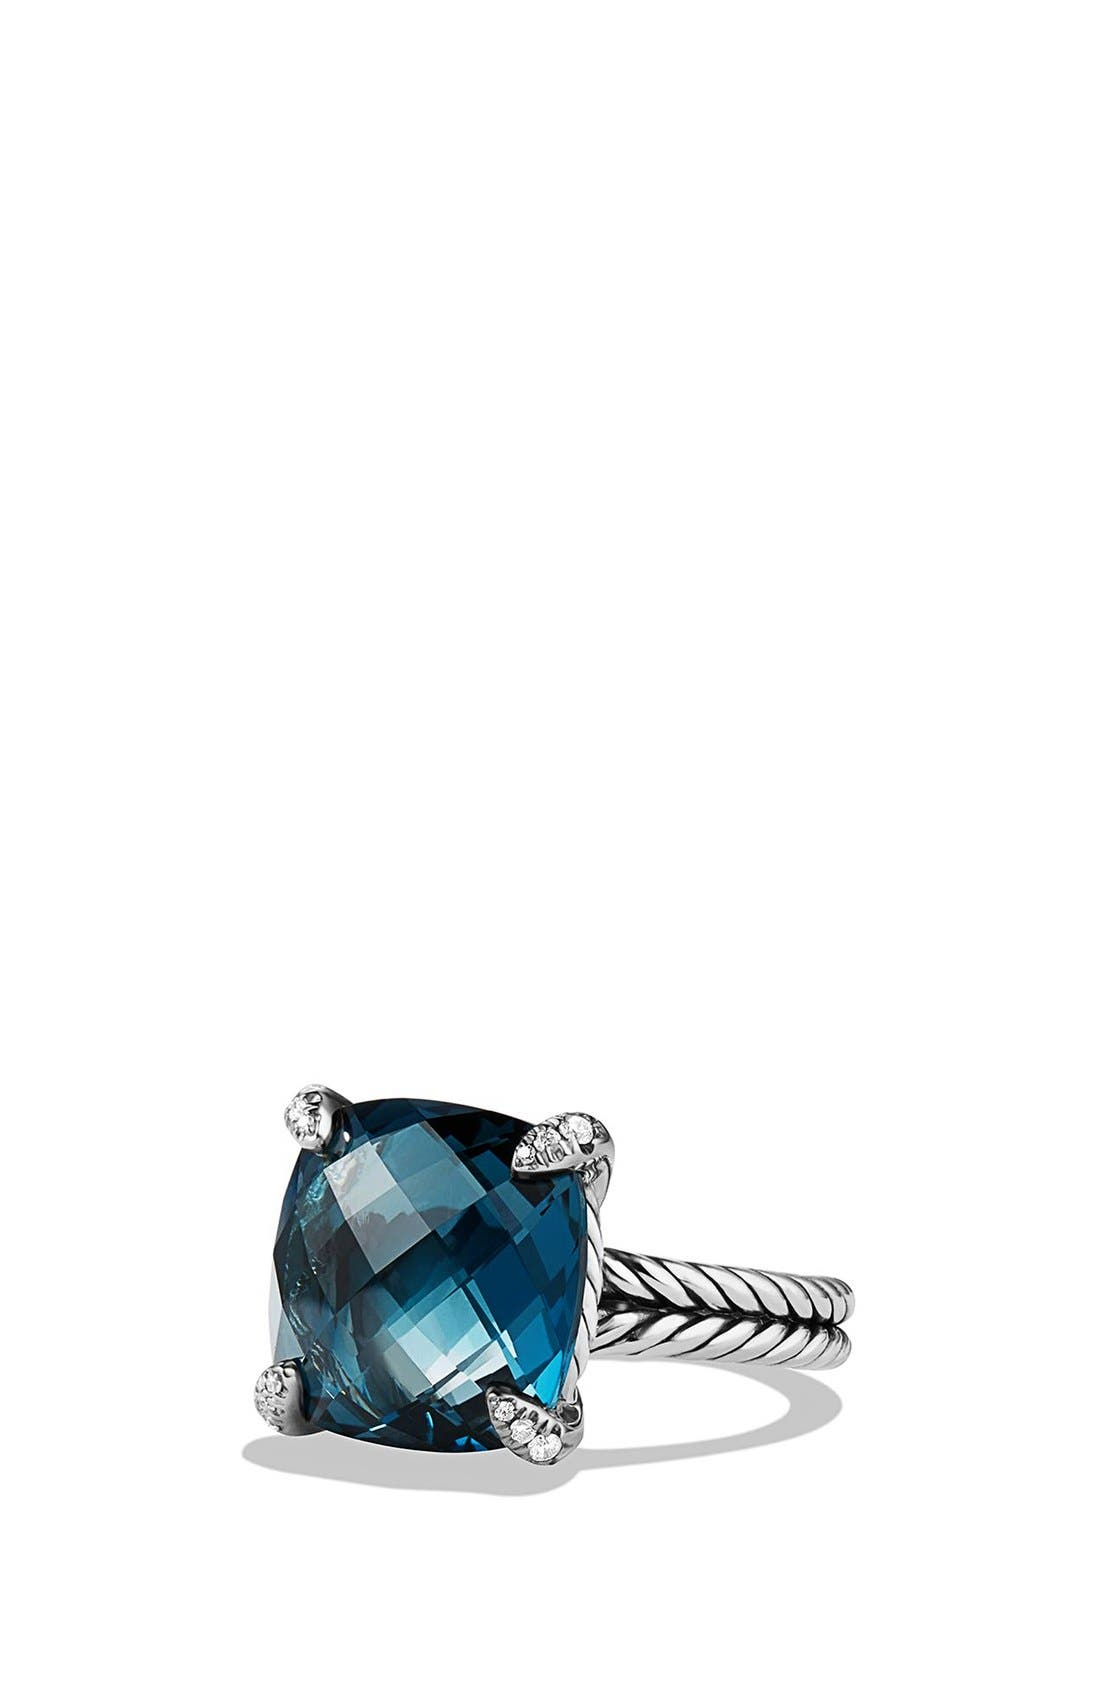 DAVID YURMAN 'Châtelaine' Ring with Semiprecious Stone and